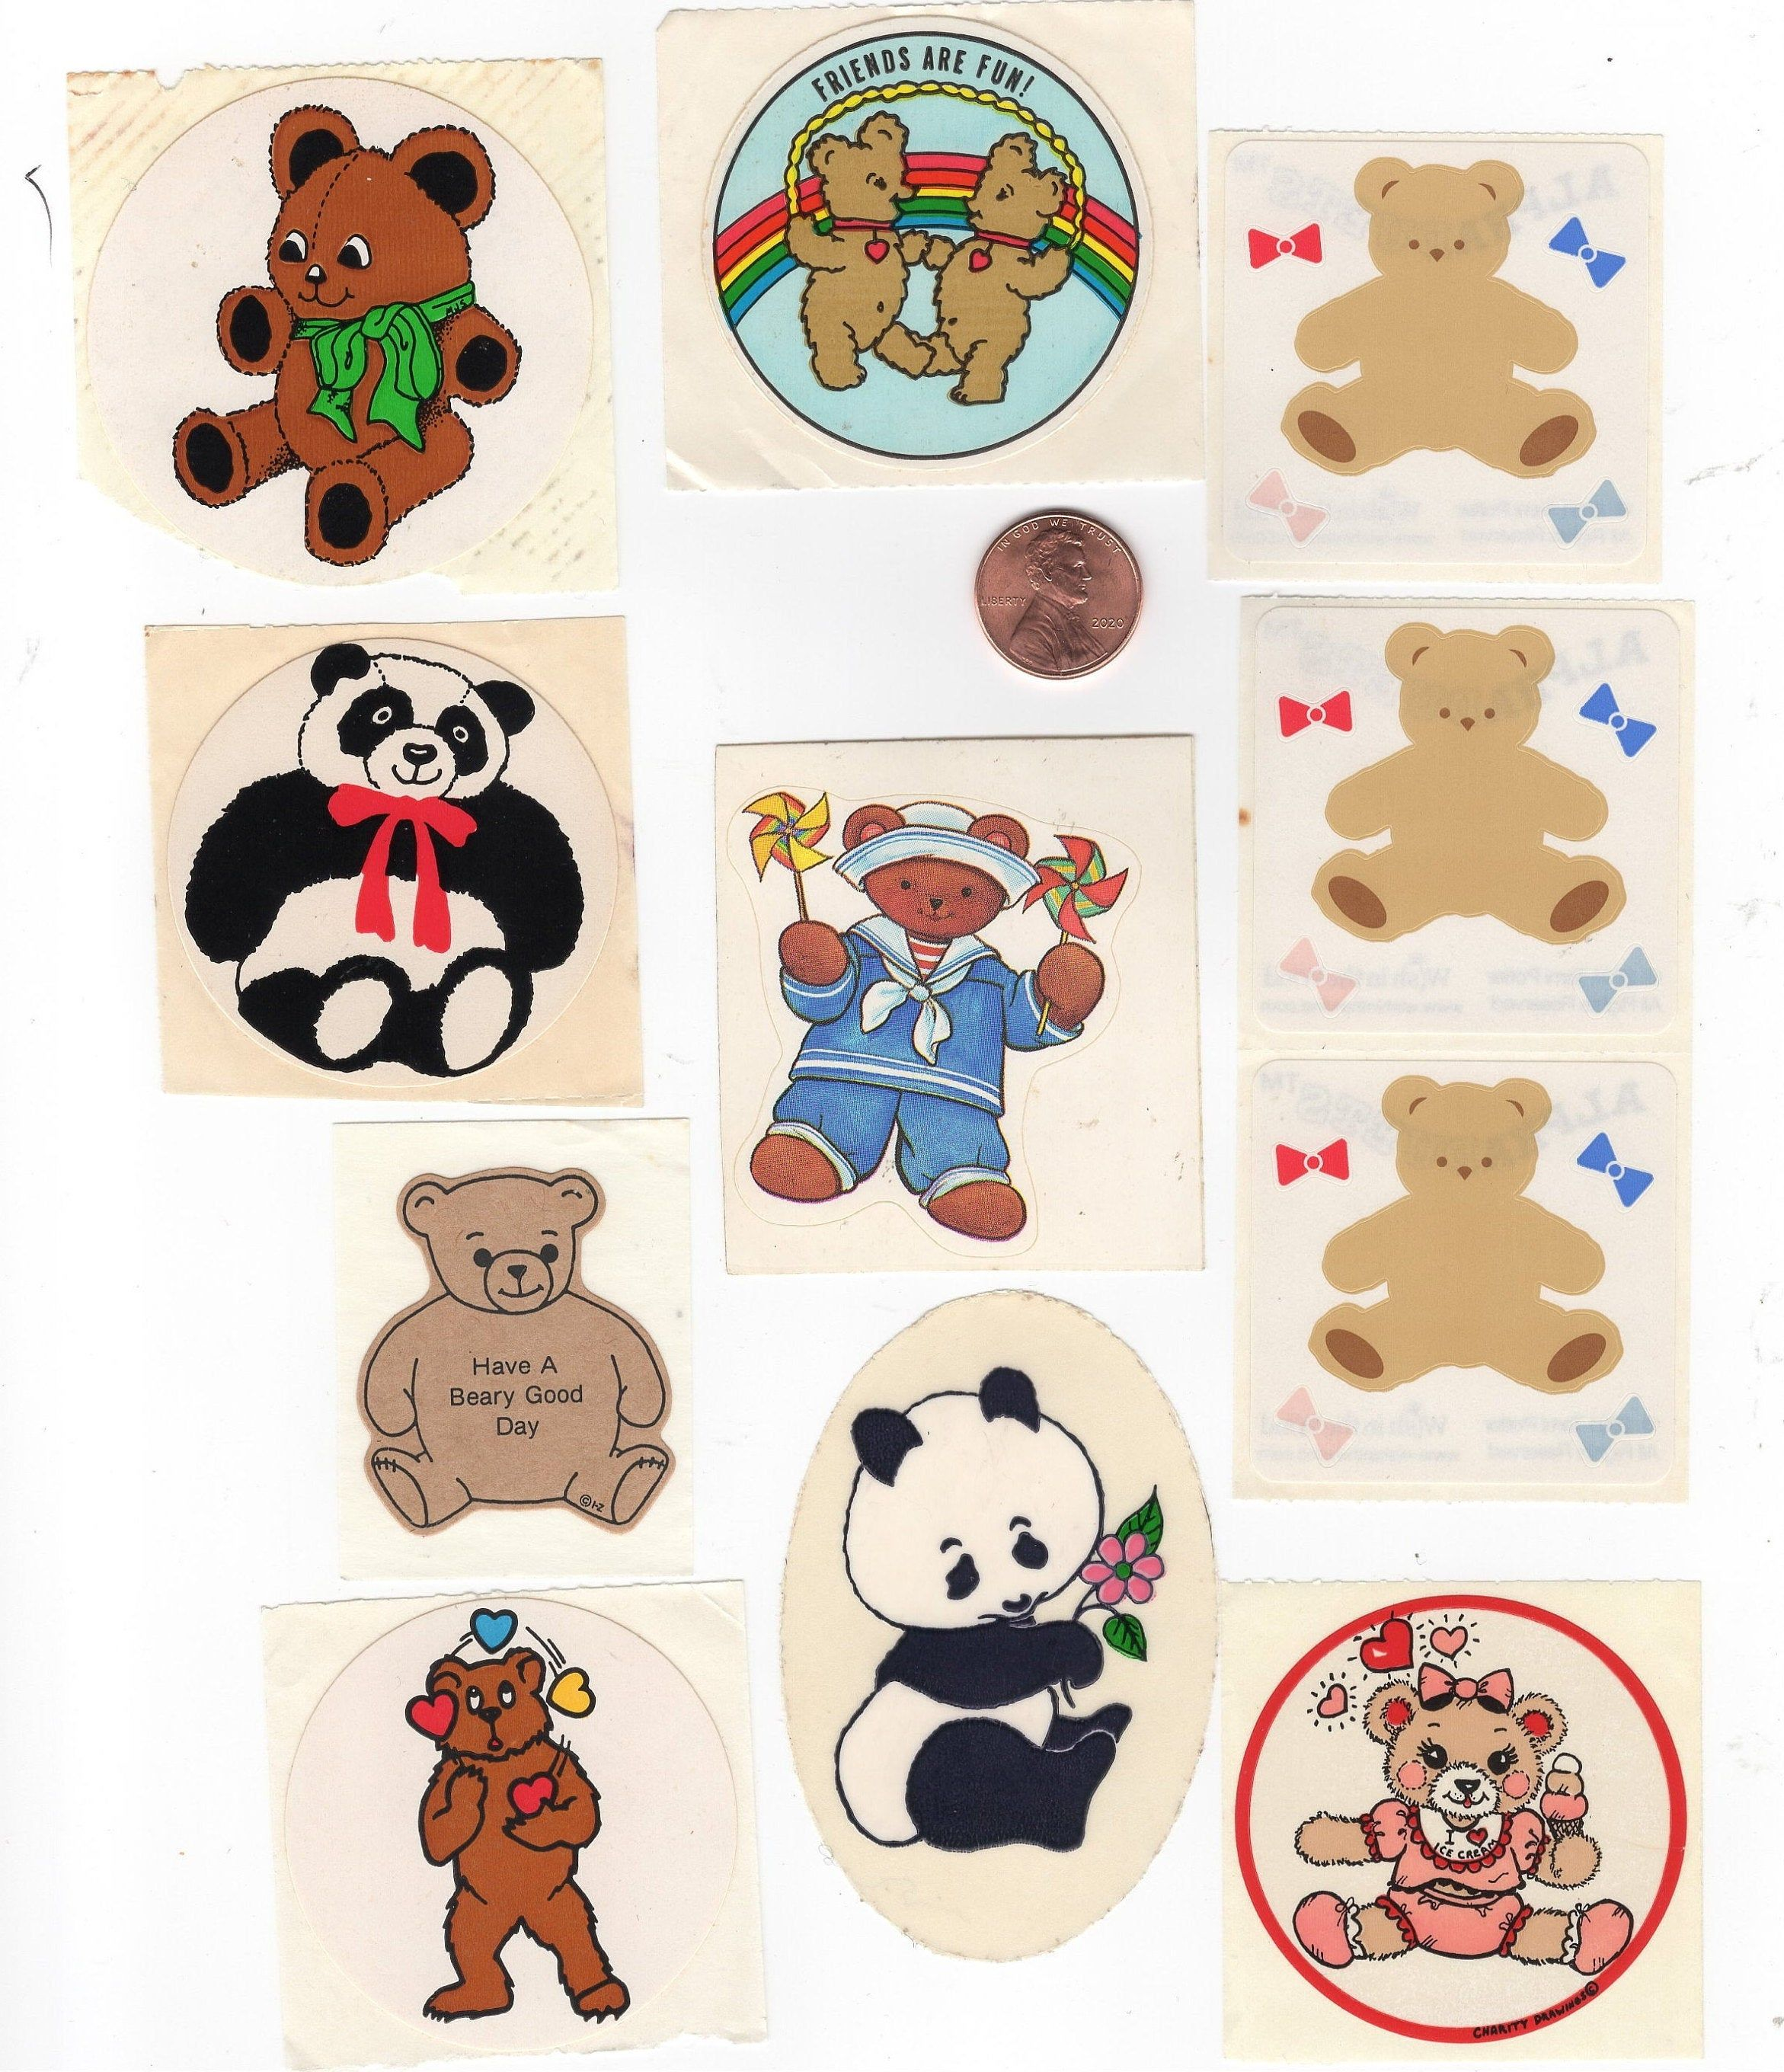 Vintage 1980 S Stickers Collection Lot 2 Teddy Bears Etsy In 2020 Sticker Collection New Sticker Fun Stickers